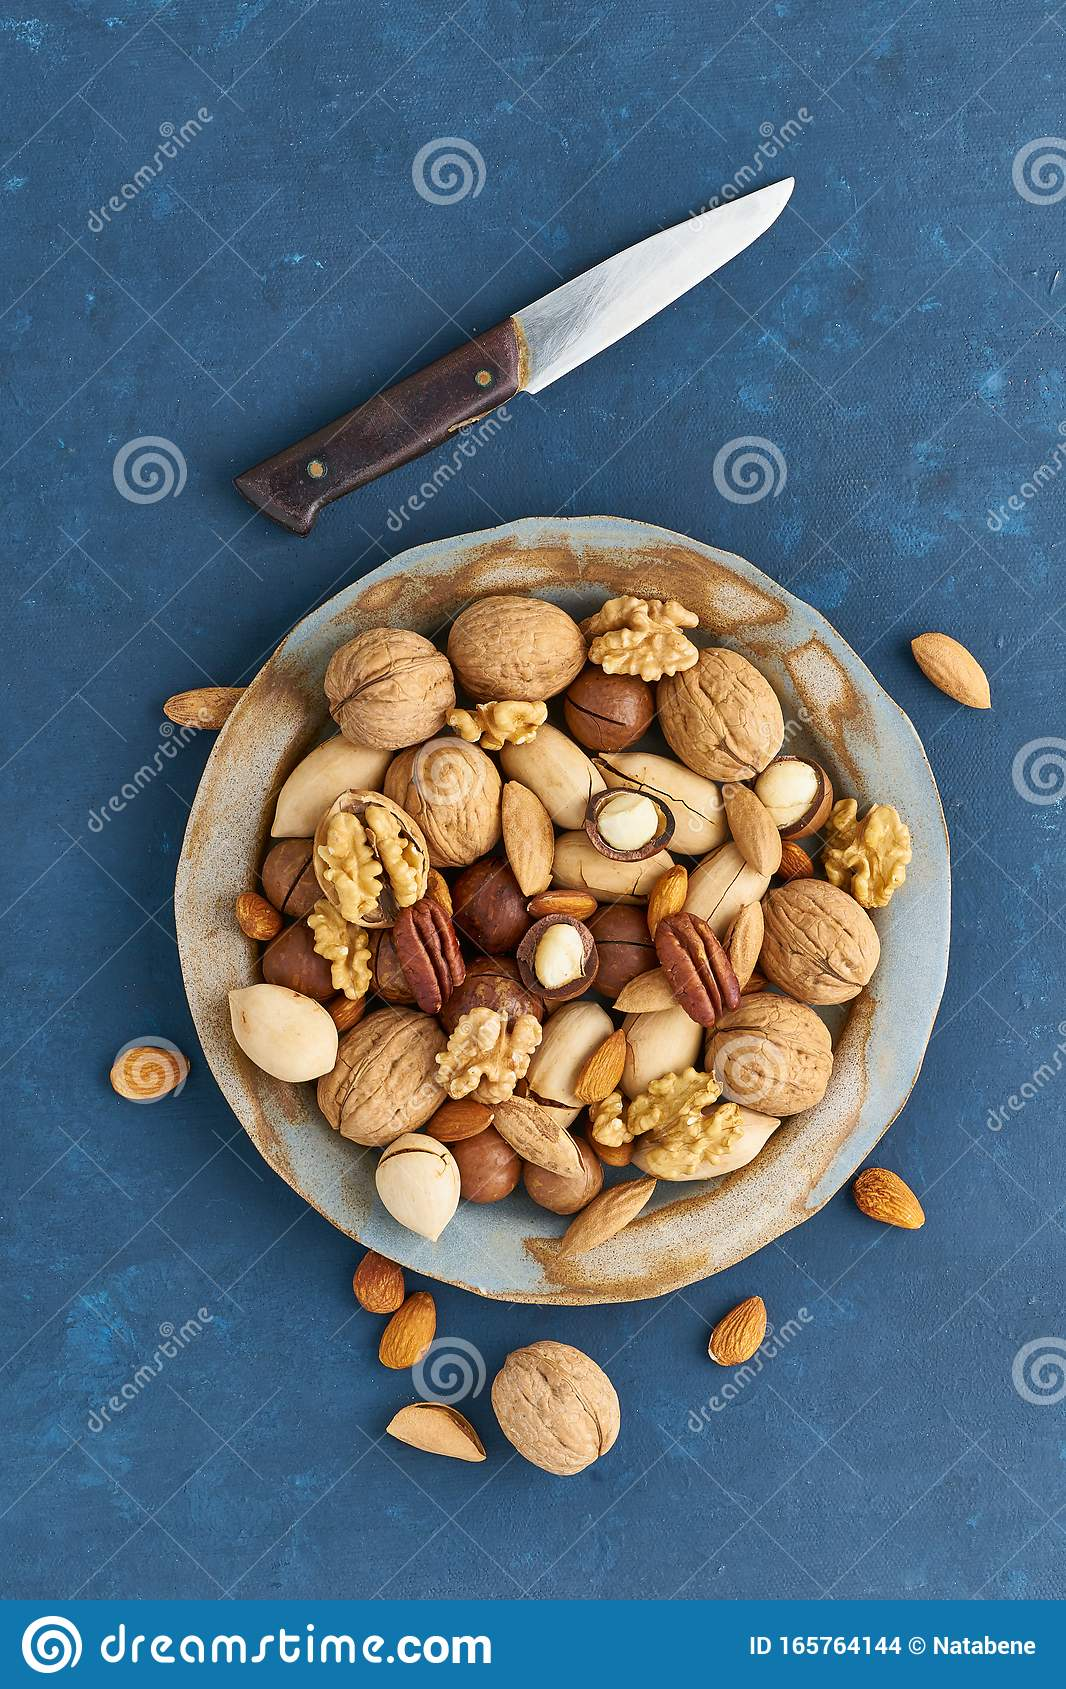 are almonds part of a vegan diet